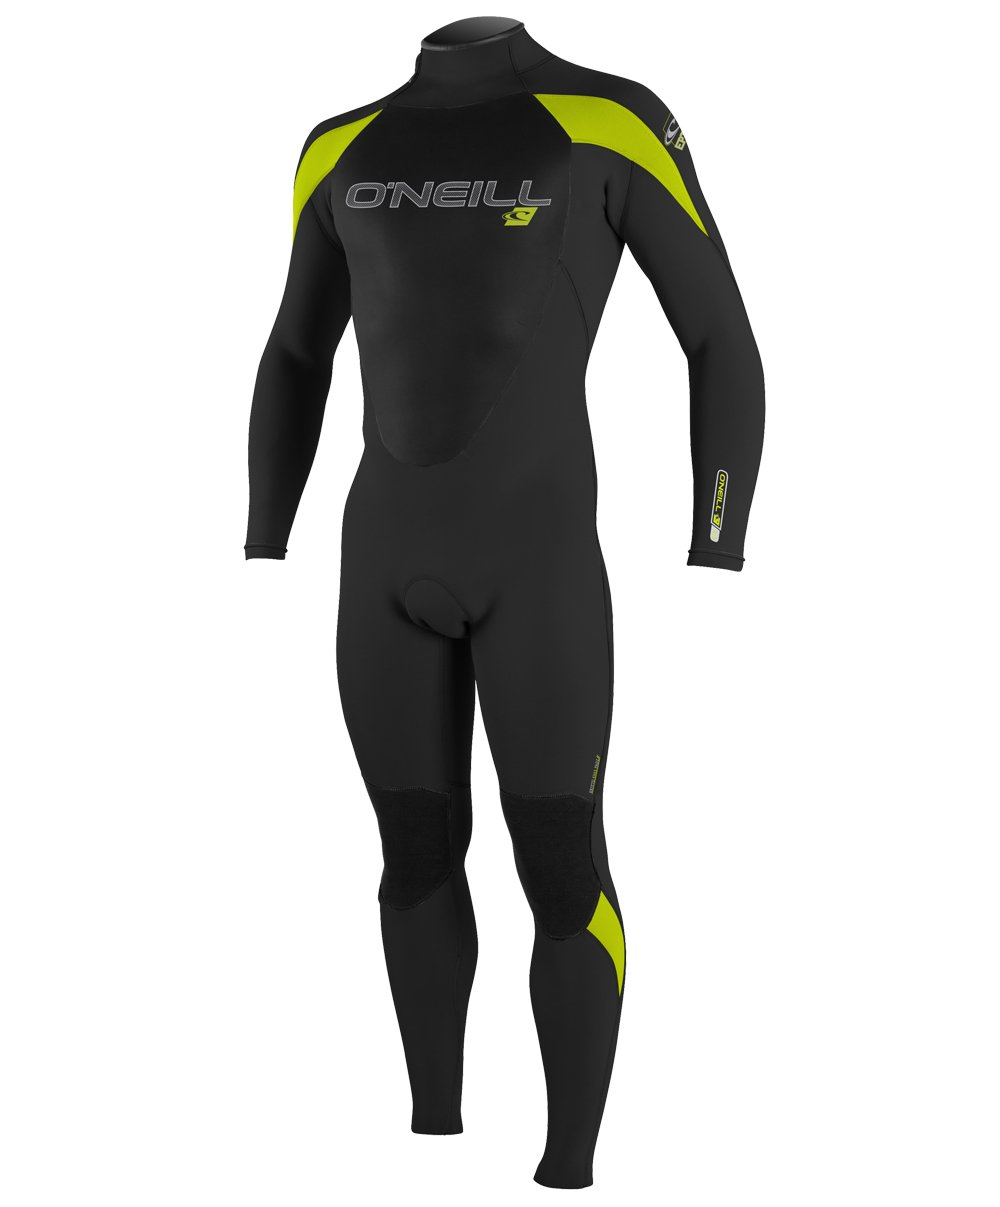 O'Neill Wetsuits Men's Epic 3/2 mm Full Suit